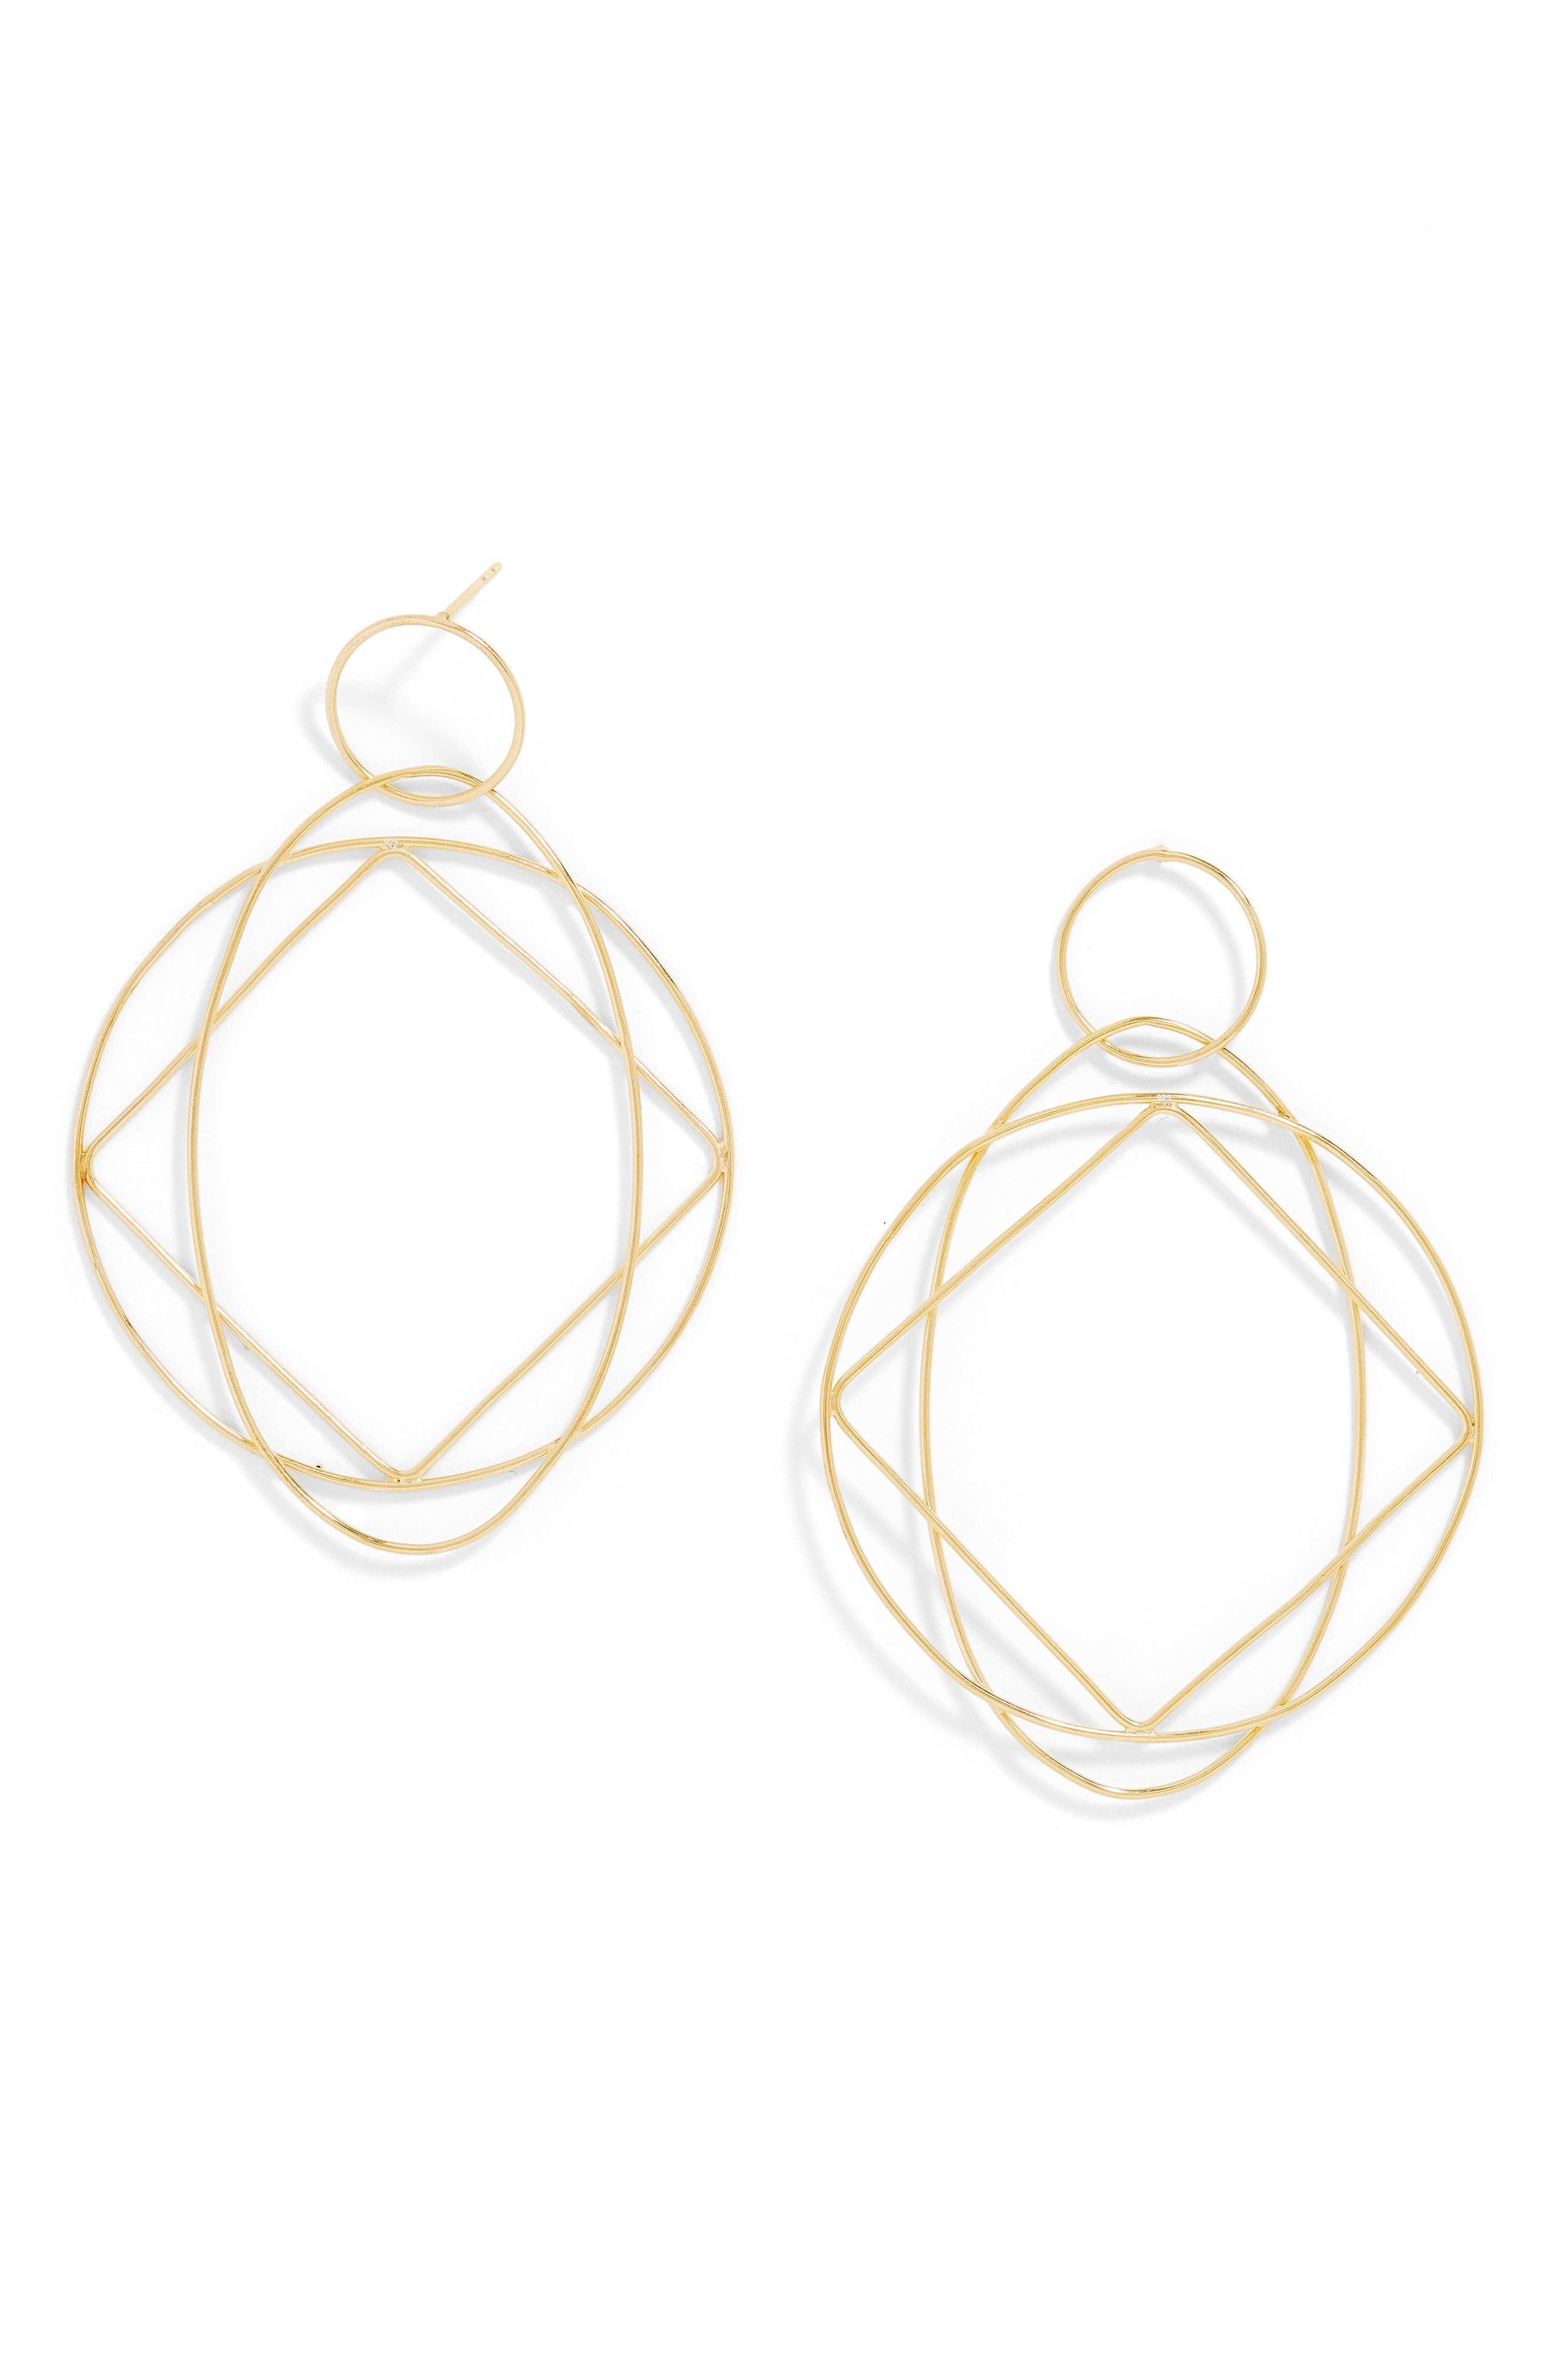 Quad Everyday Spinning Hoop Earrings,                         Main,                         color, 710